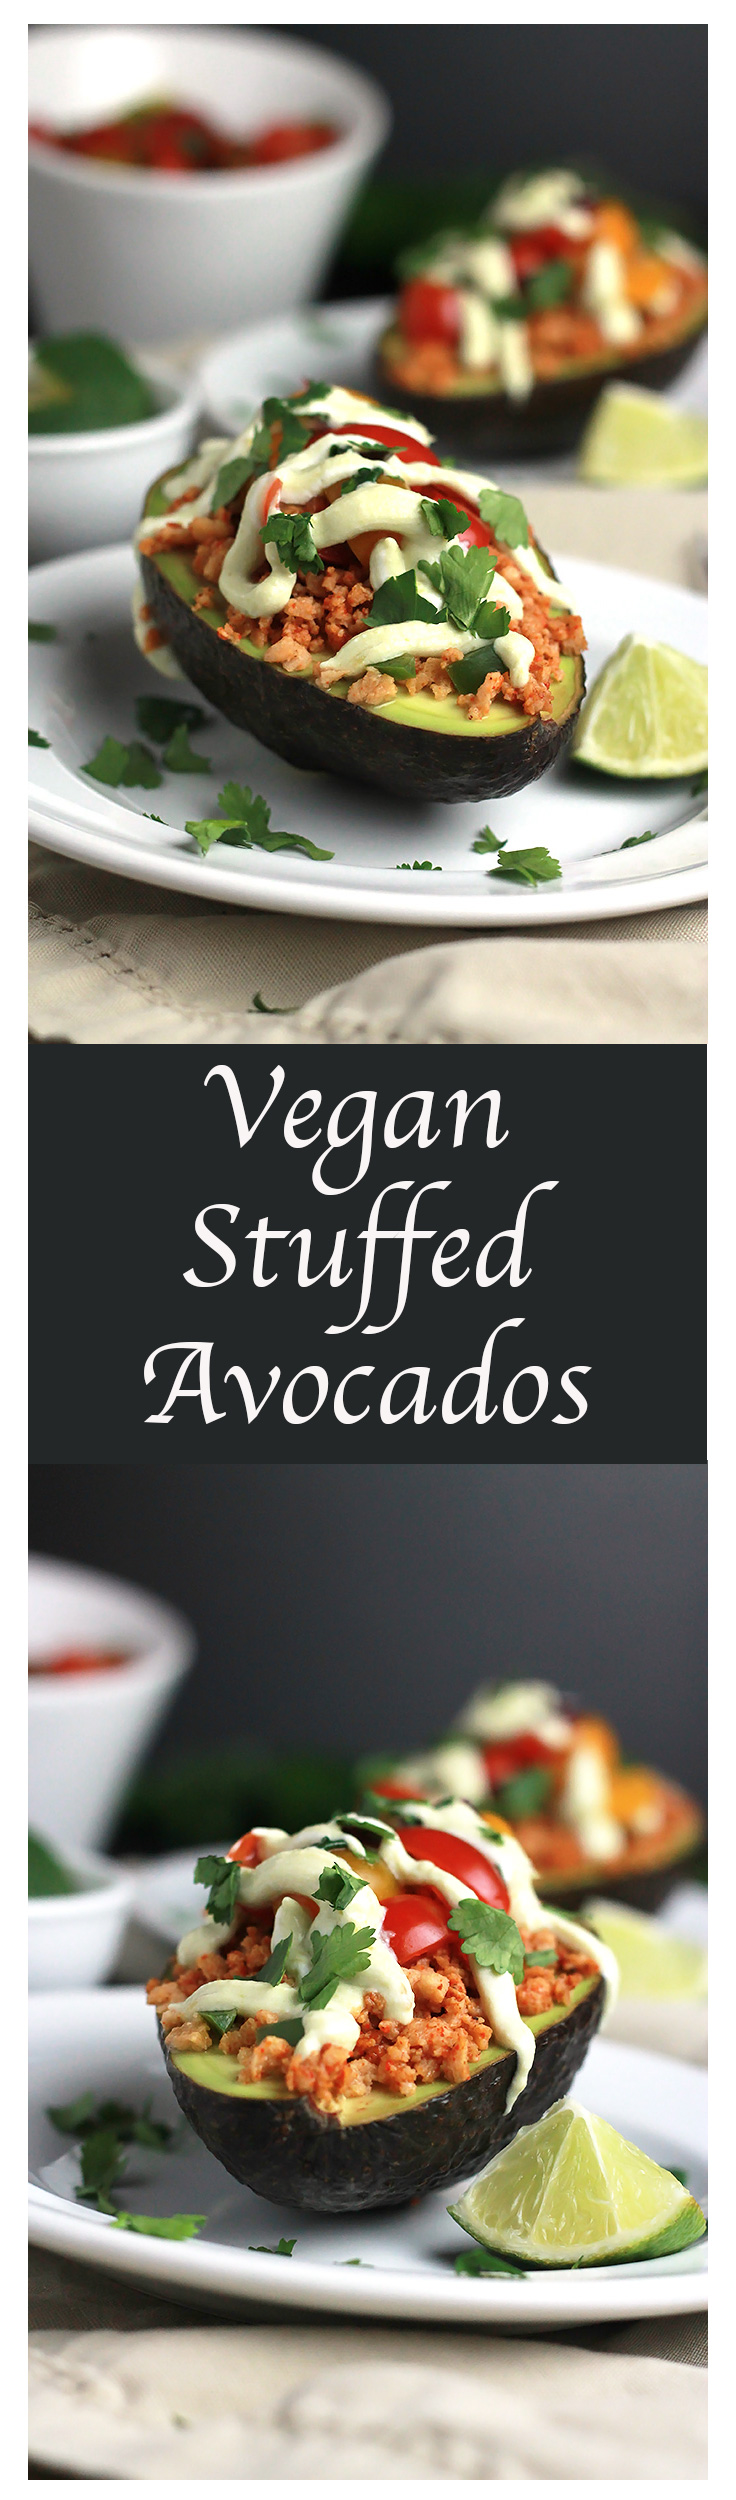 Skip the shell and just use the Avocado to hold all of the taco goodness That's what I did with these Vegan Stuffed Avocados, and let me tell you, they are so stinking delicious!